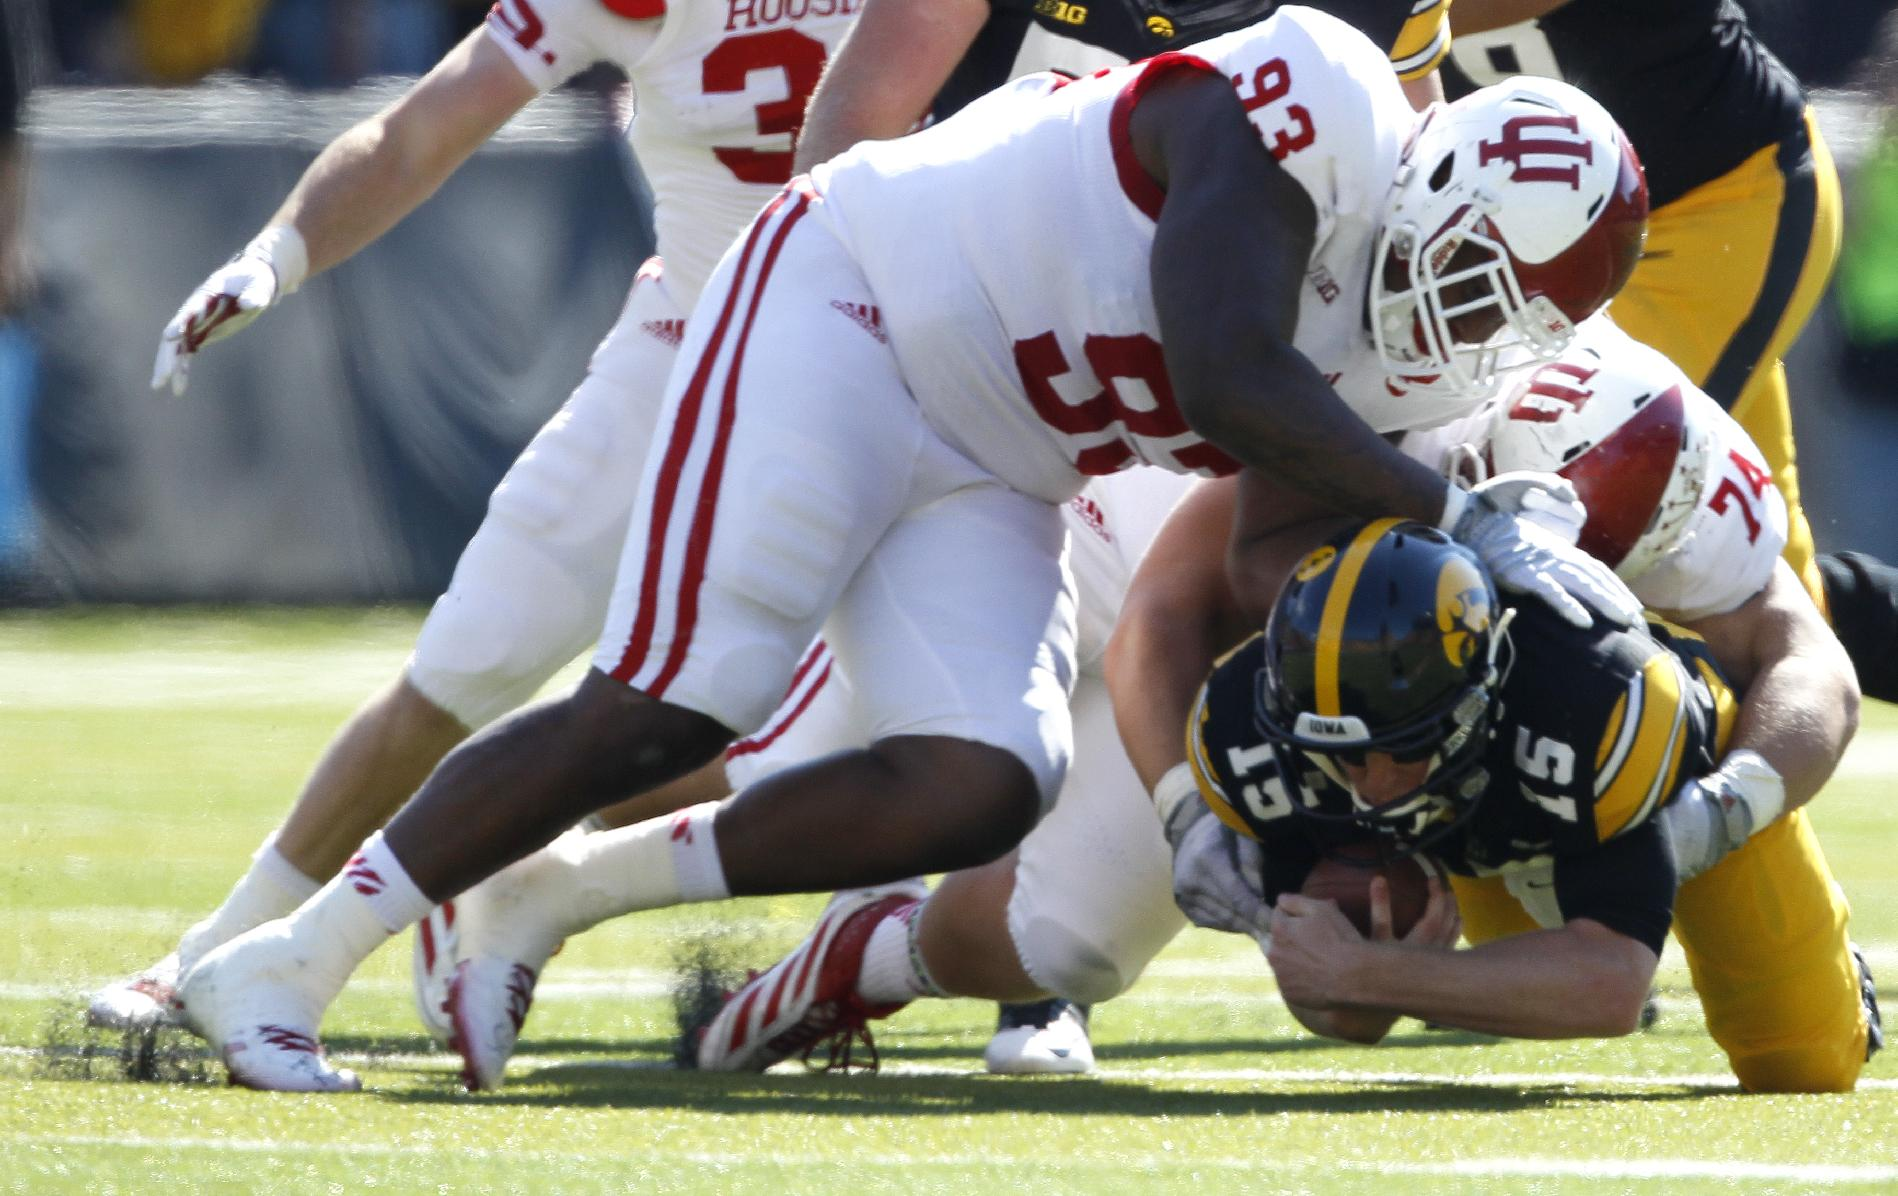 Indiana defensive tackle Ralph Green III, left, and defensive tackle Nate Hoff, right, sack Iowa quarterback Jake Rudock during the first half of an NCAA college football game Saturday, Oct. 11, 2014, in Iowa City, Iowa. (AP Photo/Matthew Putney)